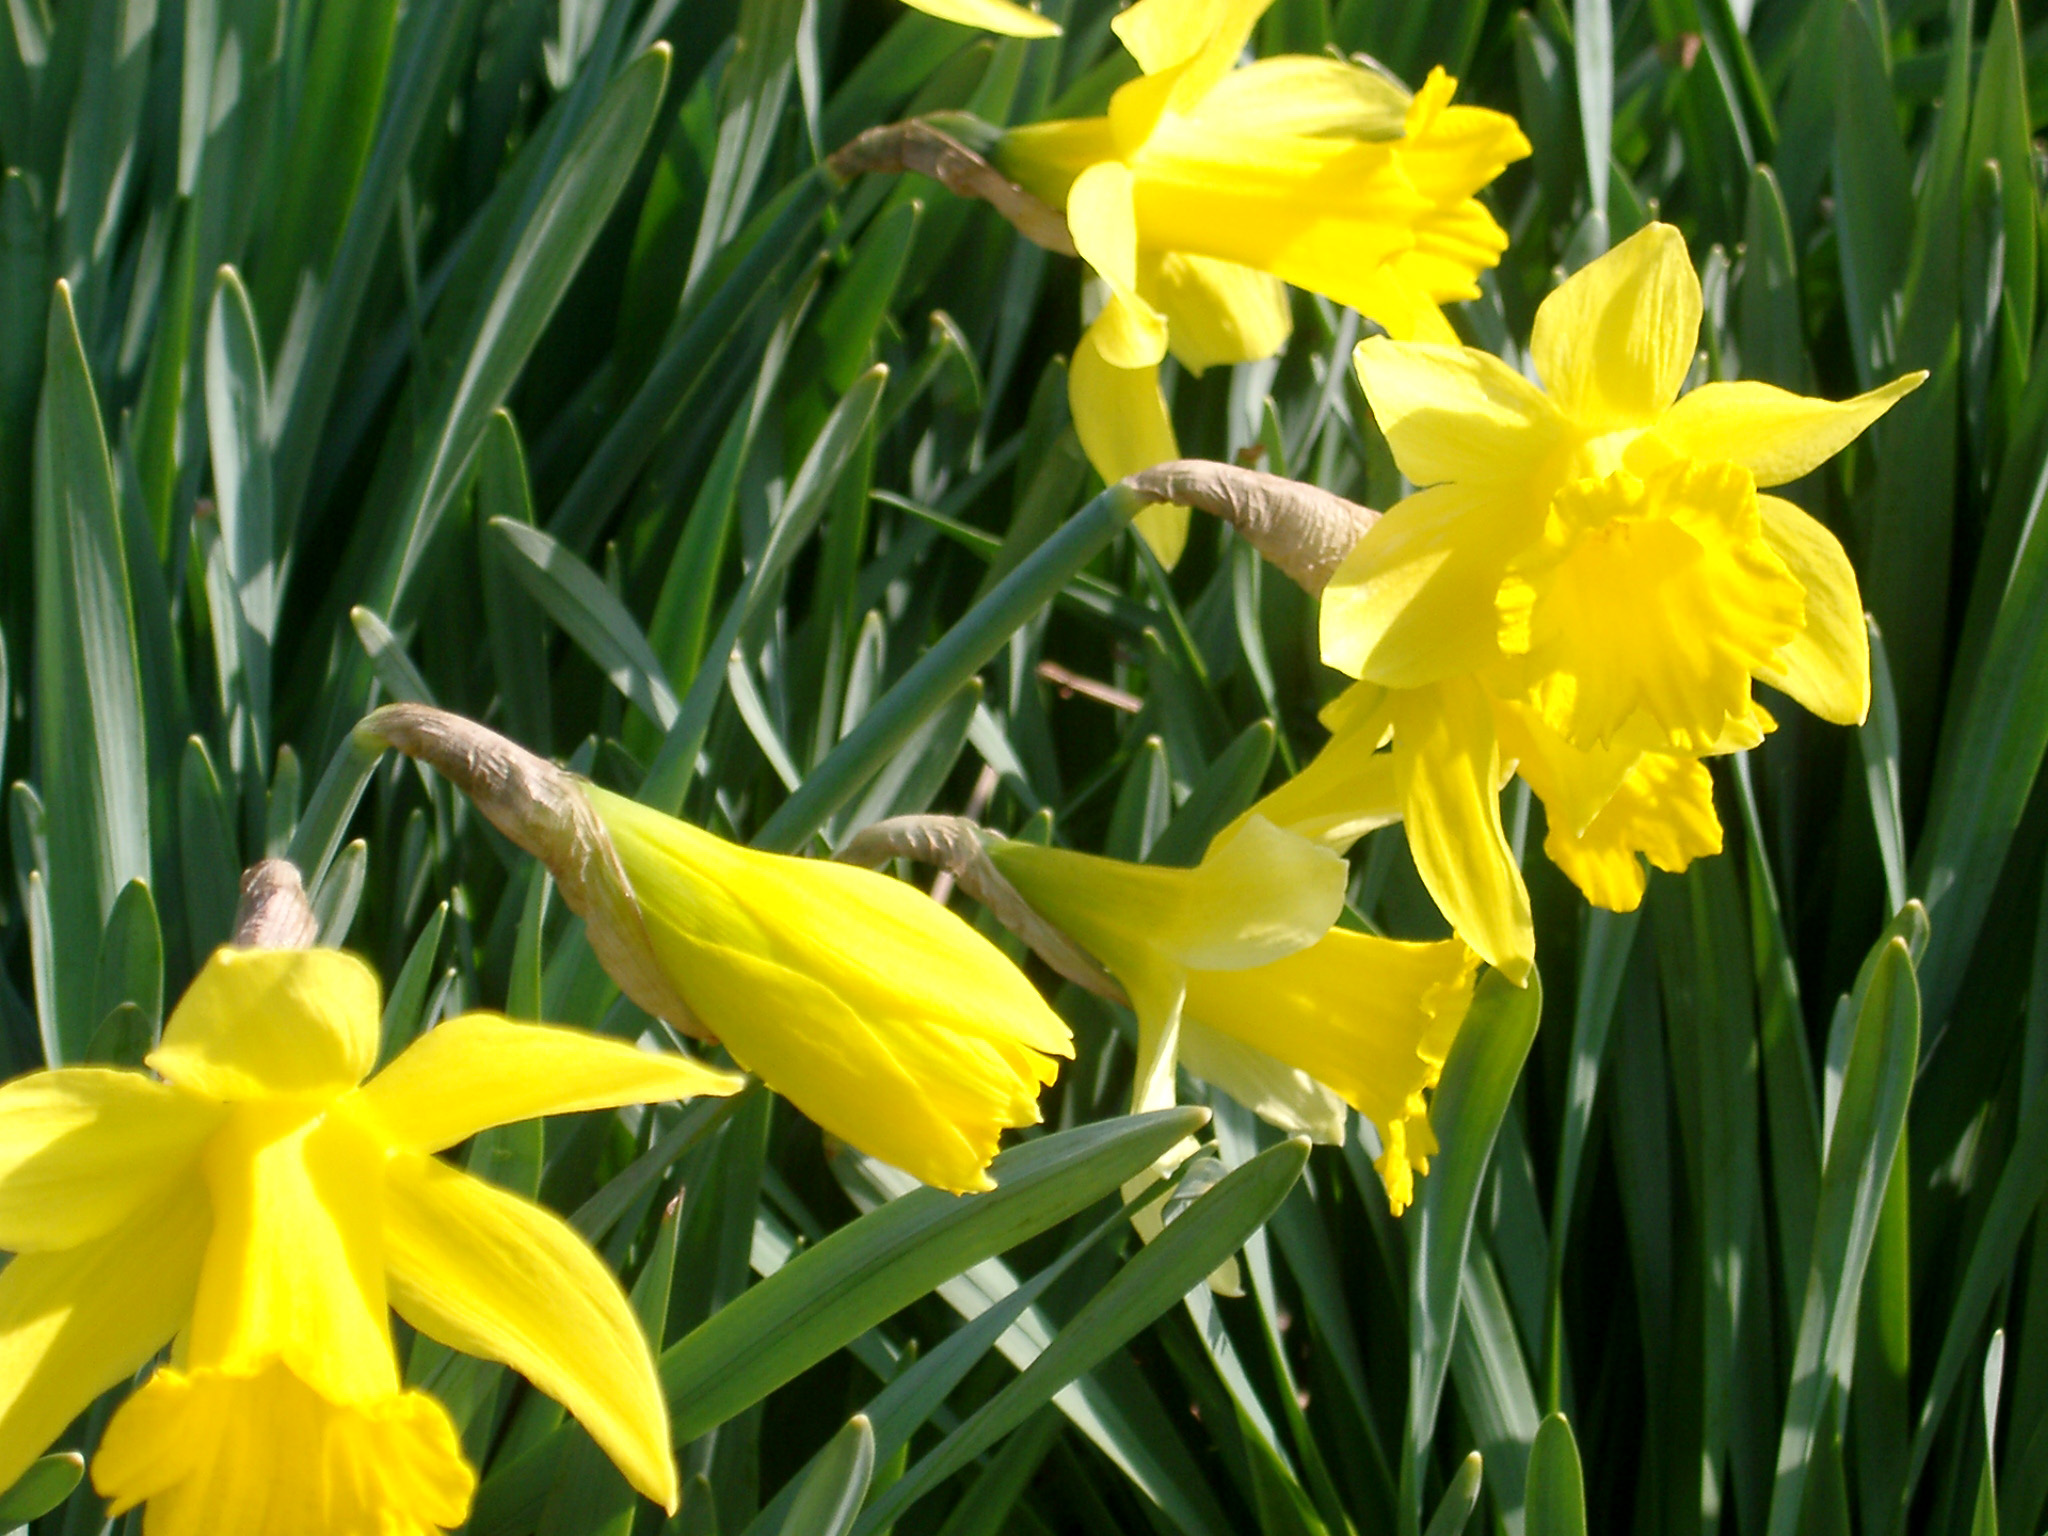 Close on Attractive Fresh Looking Yellow Daffodils with Dark Green Leaves at the Garden. Captured on a Sunny Day.